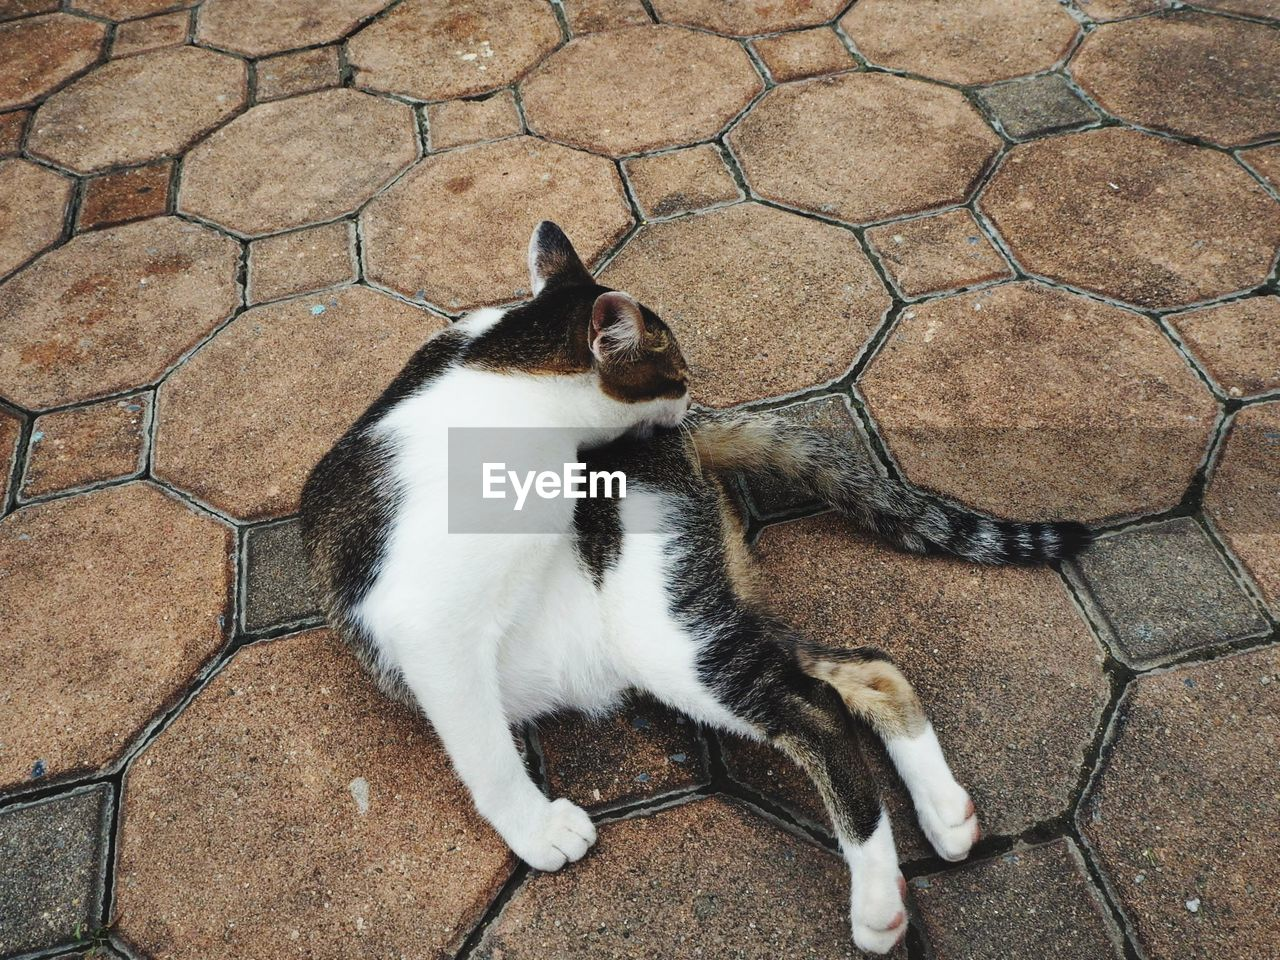 feline, cat, pets, domestic, domestic animals, domestic cat, vertebrate, high angle view, mammal, one animal, no people, relaxation, day, footpath, flooring, full length, directly above, paving stone, tiled floor, whisker